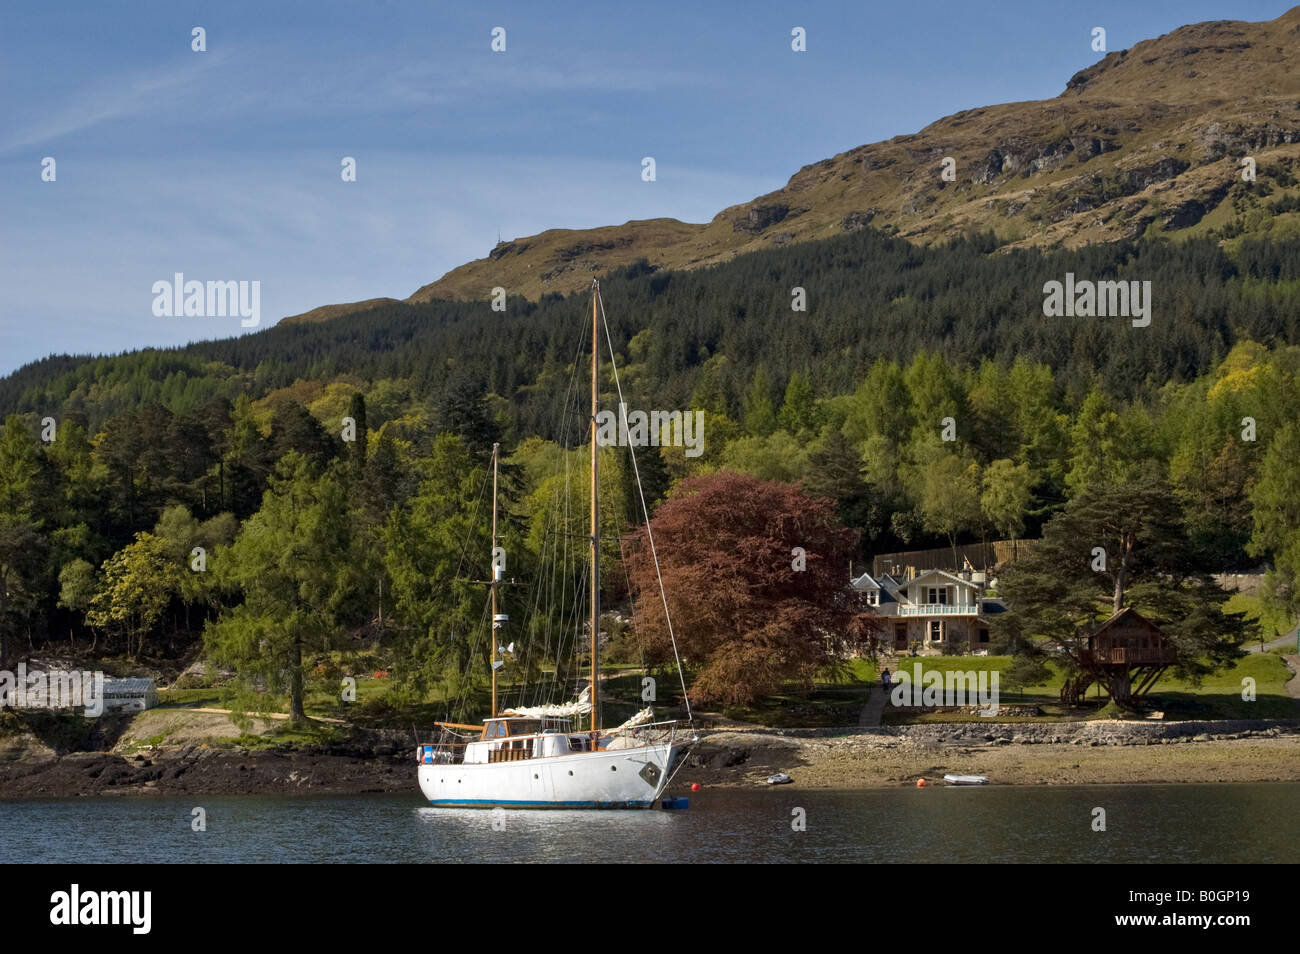 Sailing yacht on a mooring in Loch Goil, Argyll, Scotland UK Stock Photo